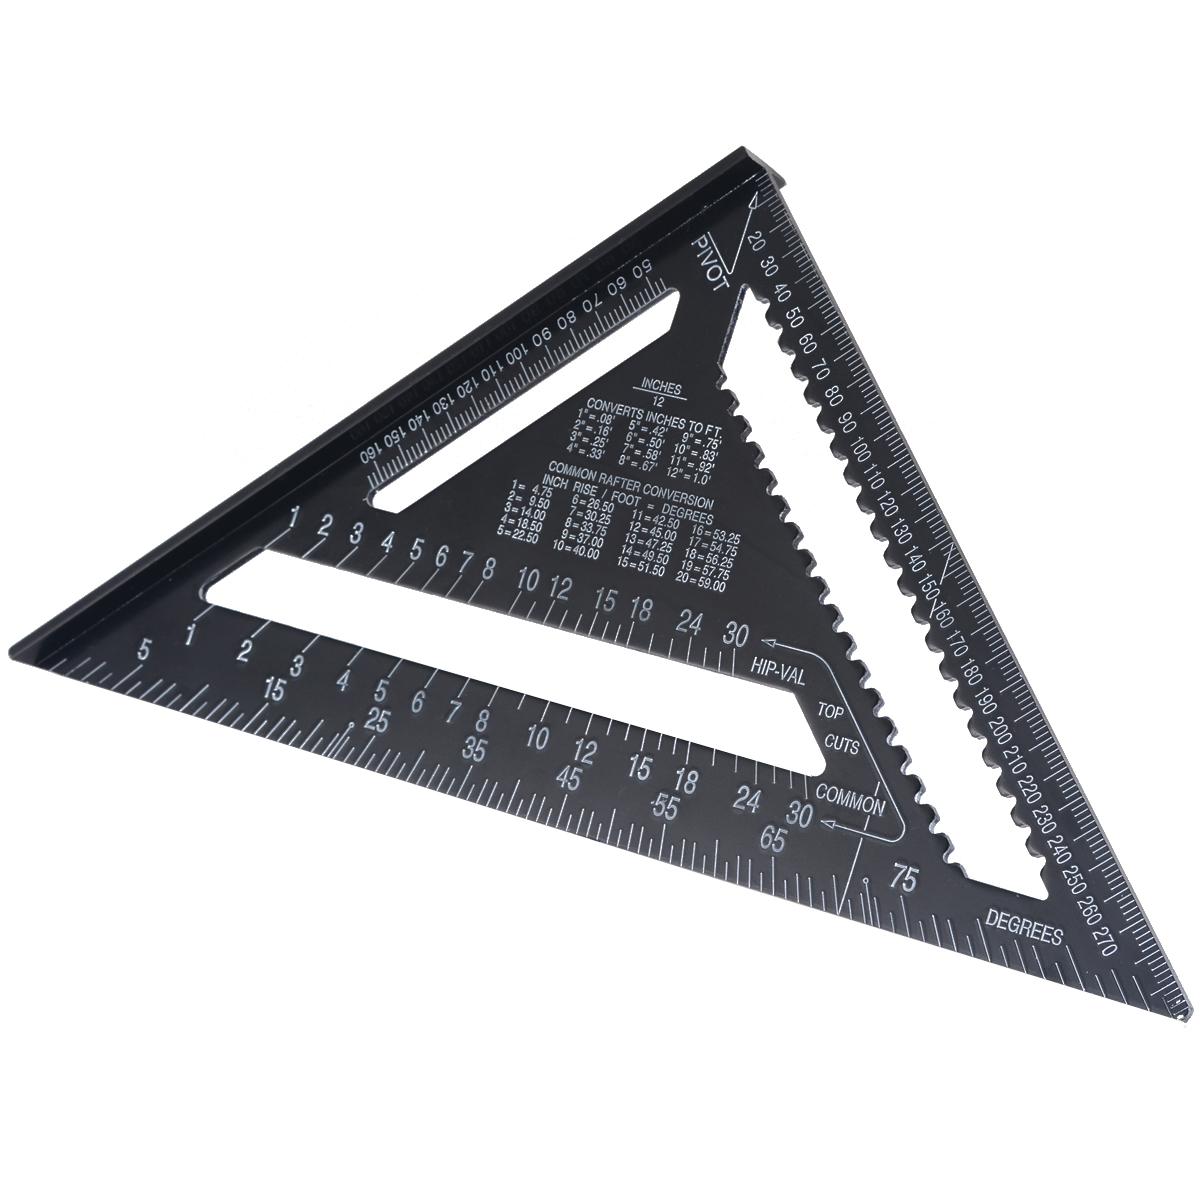 """Angle Ruler 12"""" Metric Aluminum Alloy Triangular Measuring Ruler Woodwork Speed Square Triangle Angle Protractor Measuring Tool"""